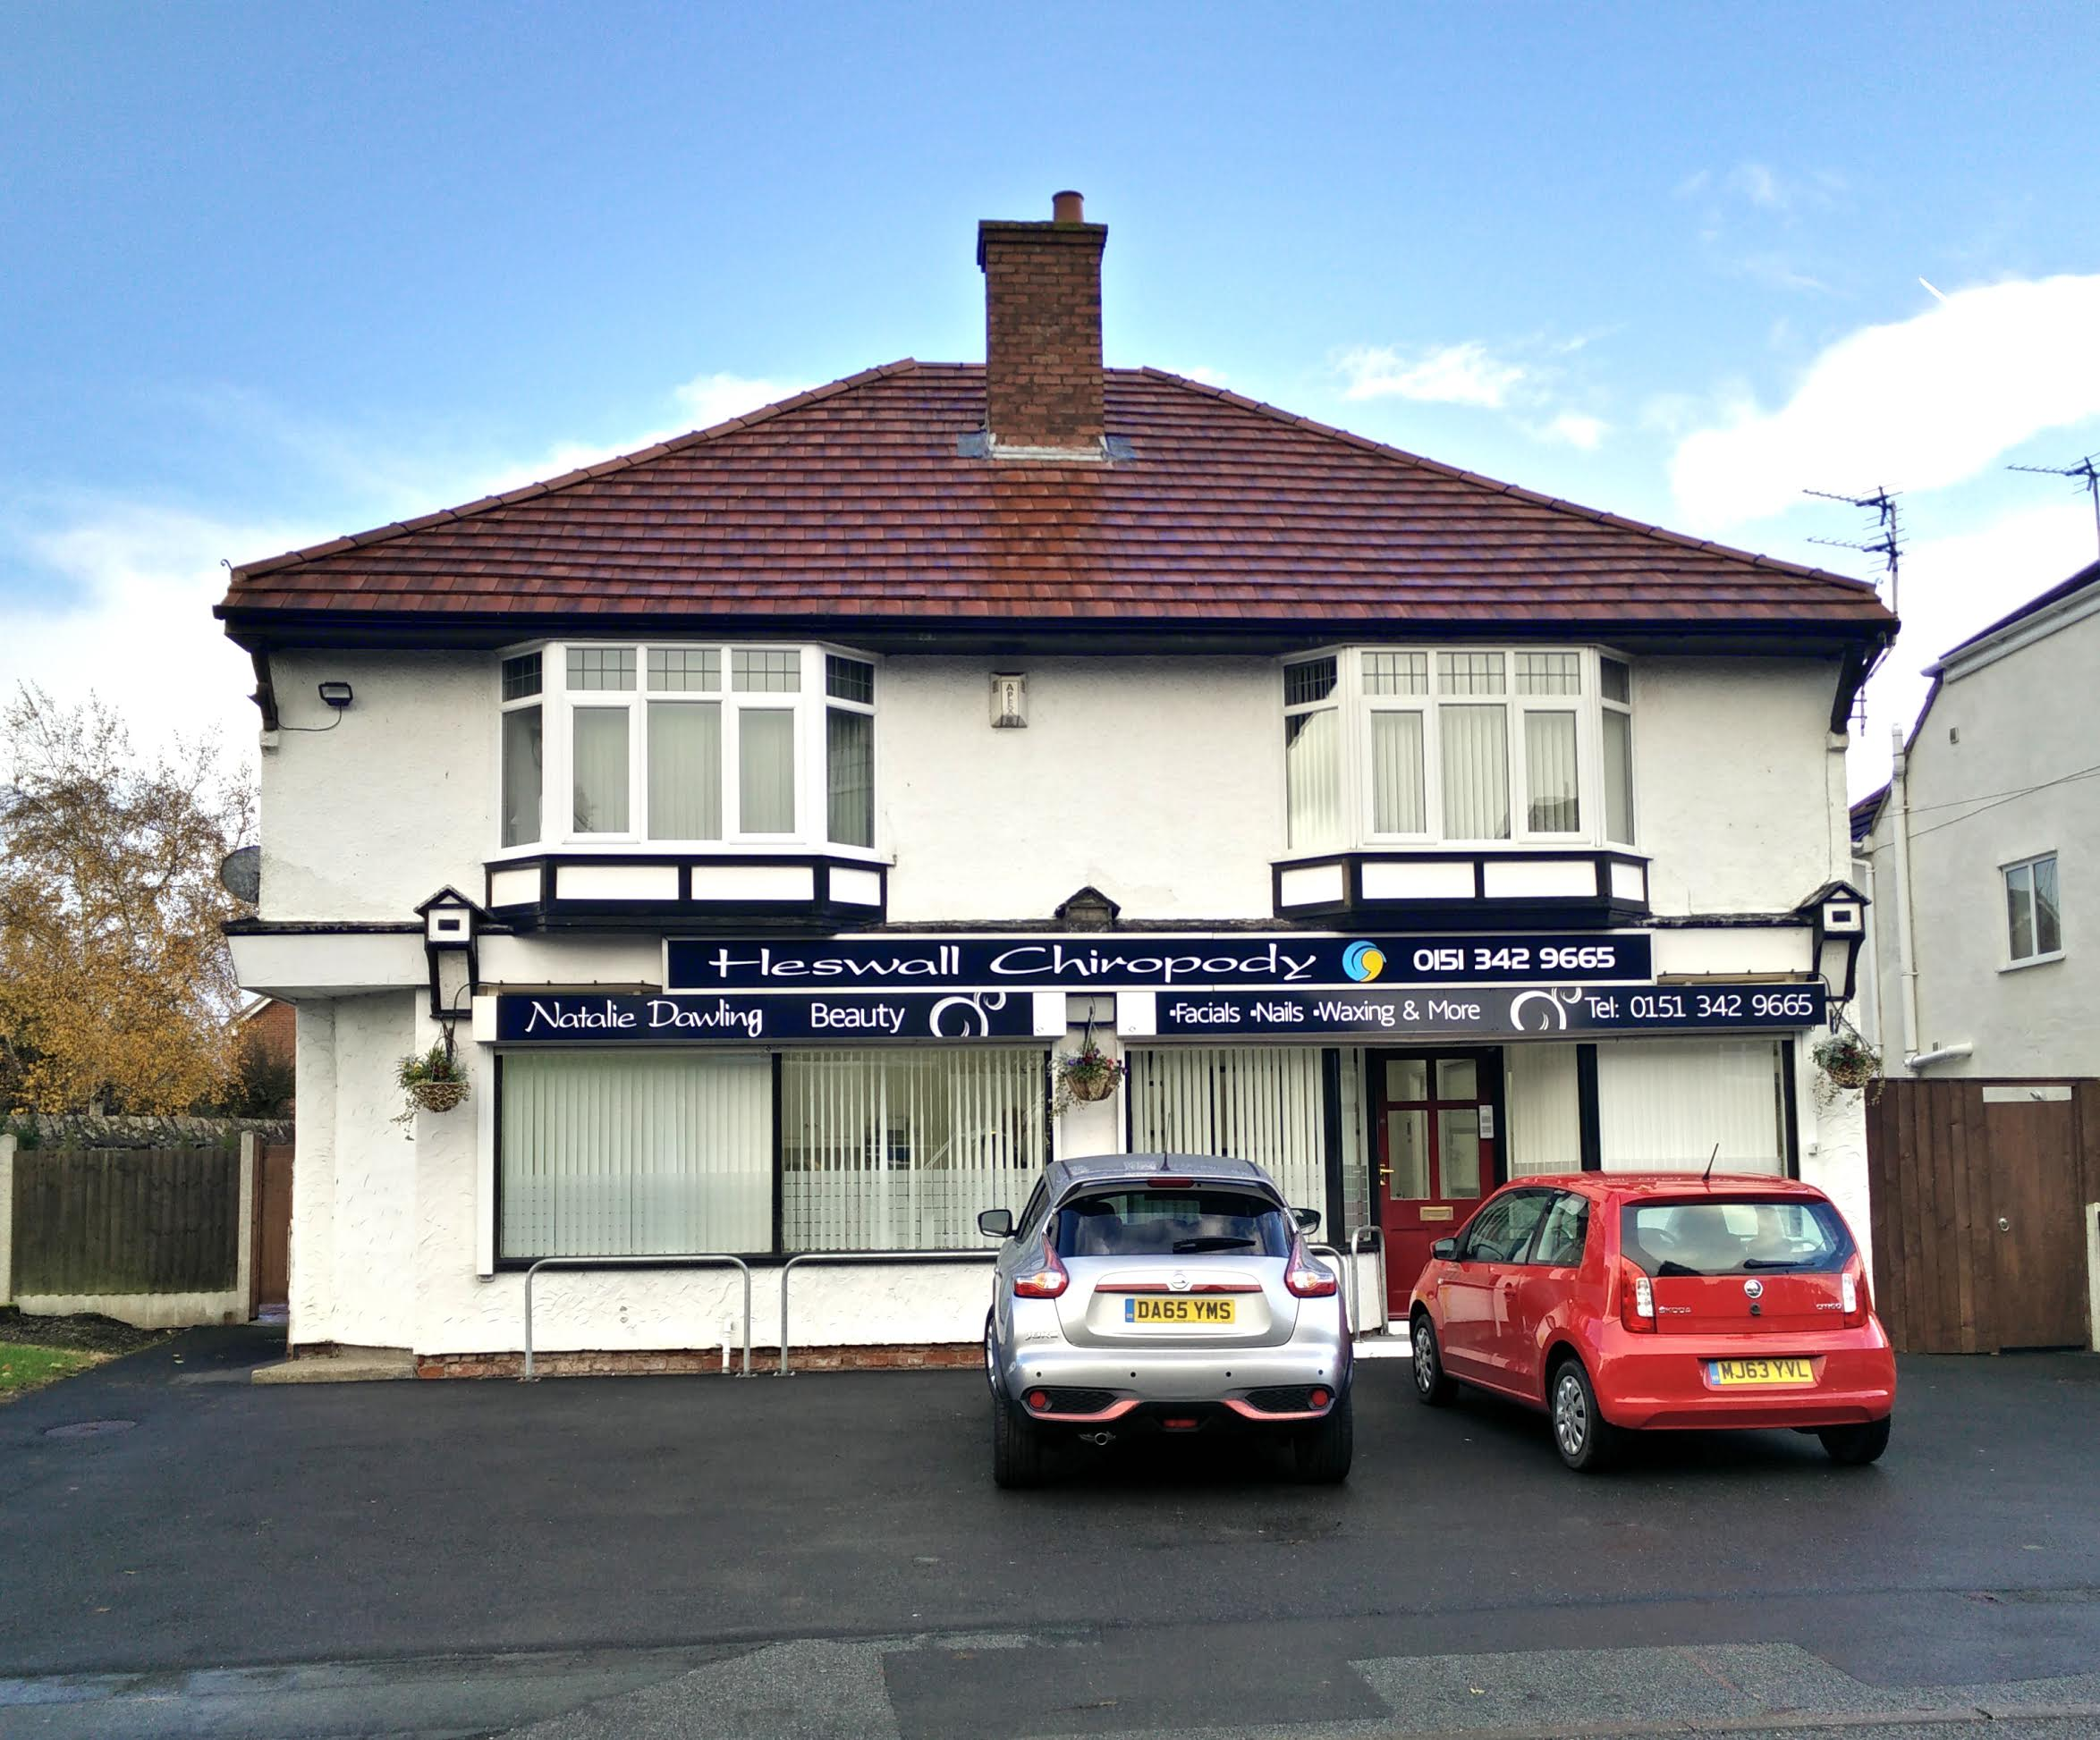 Heswall Chiropody Building, Milner Road